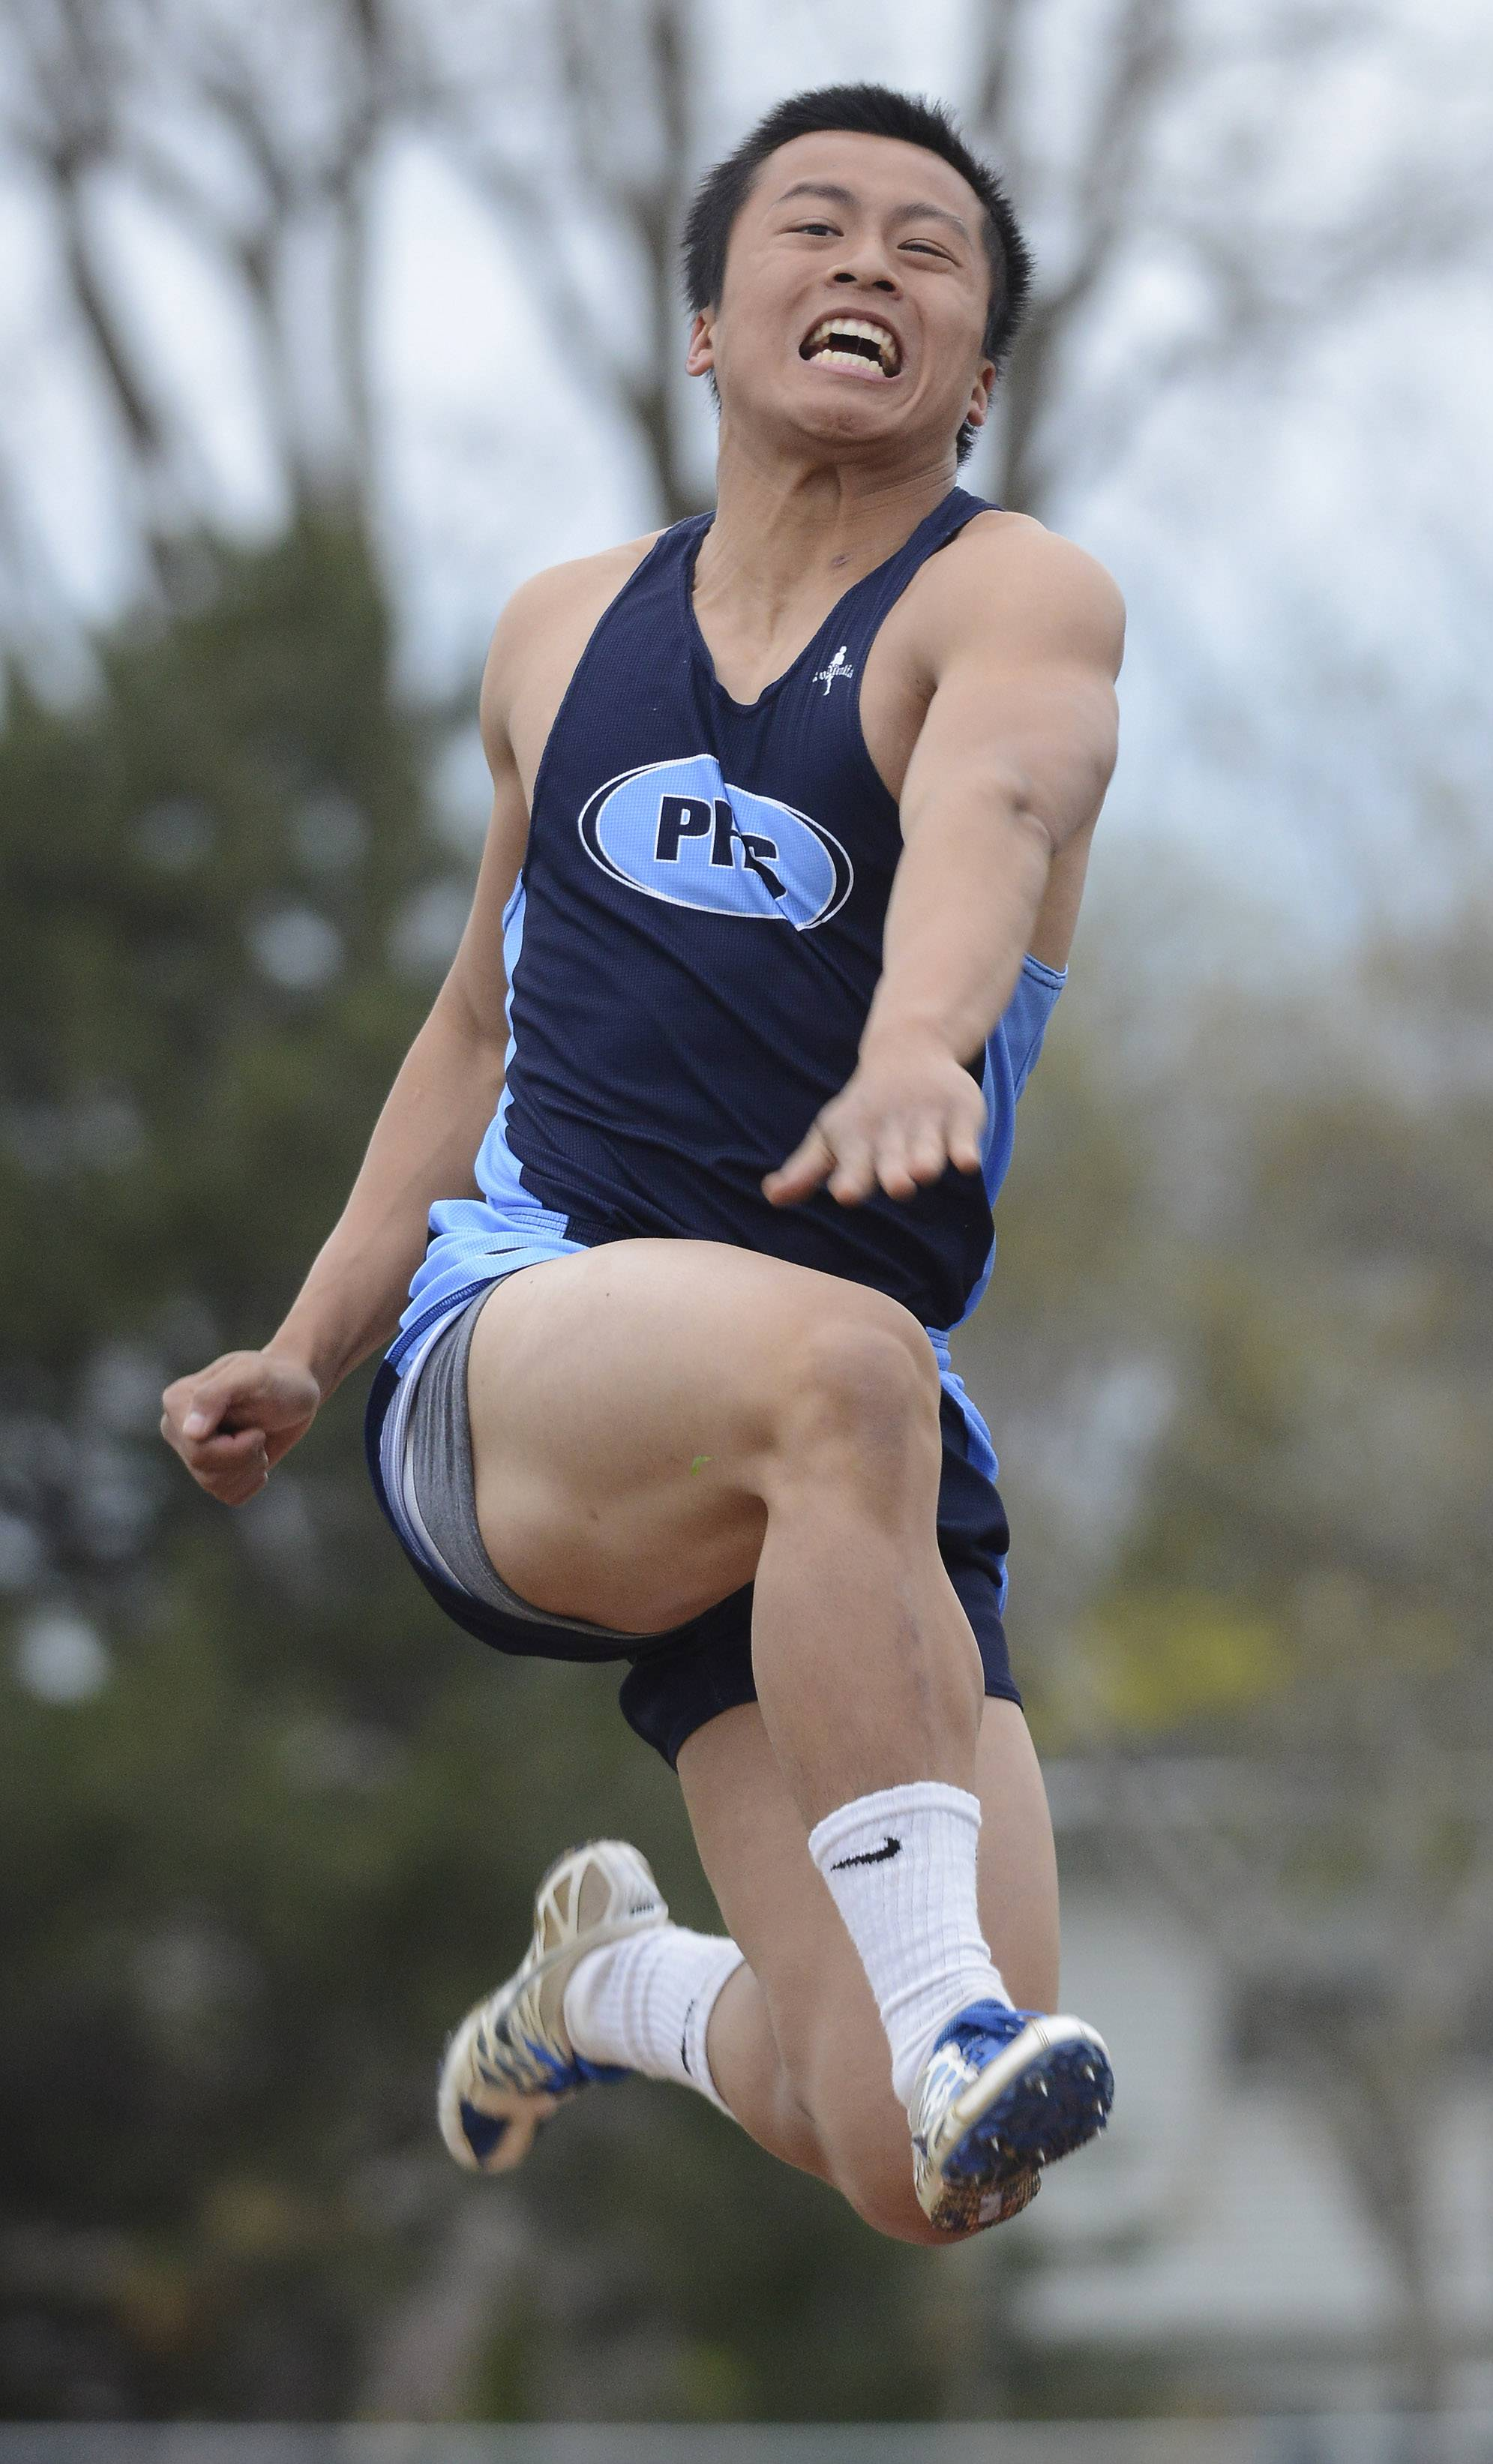 Prospect's Vinny Lai competes in the long jump during the Wanner Invitational at Prospect Friday.